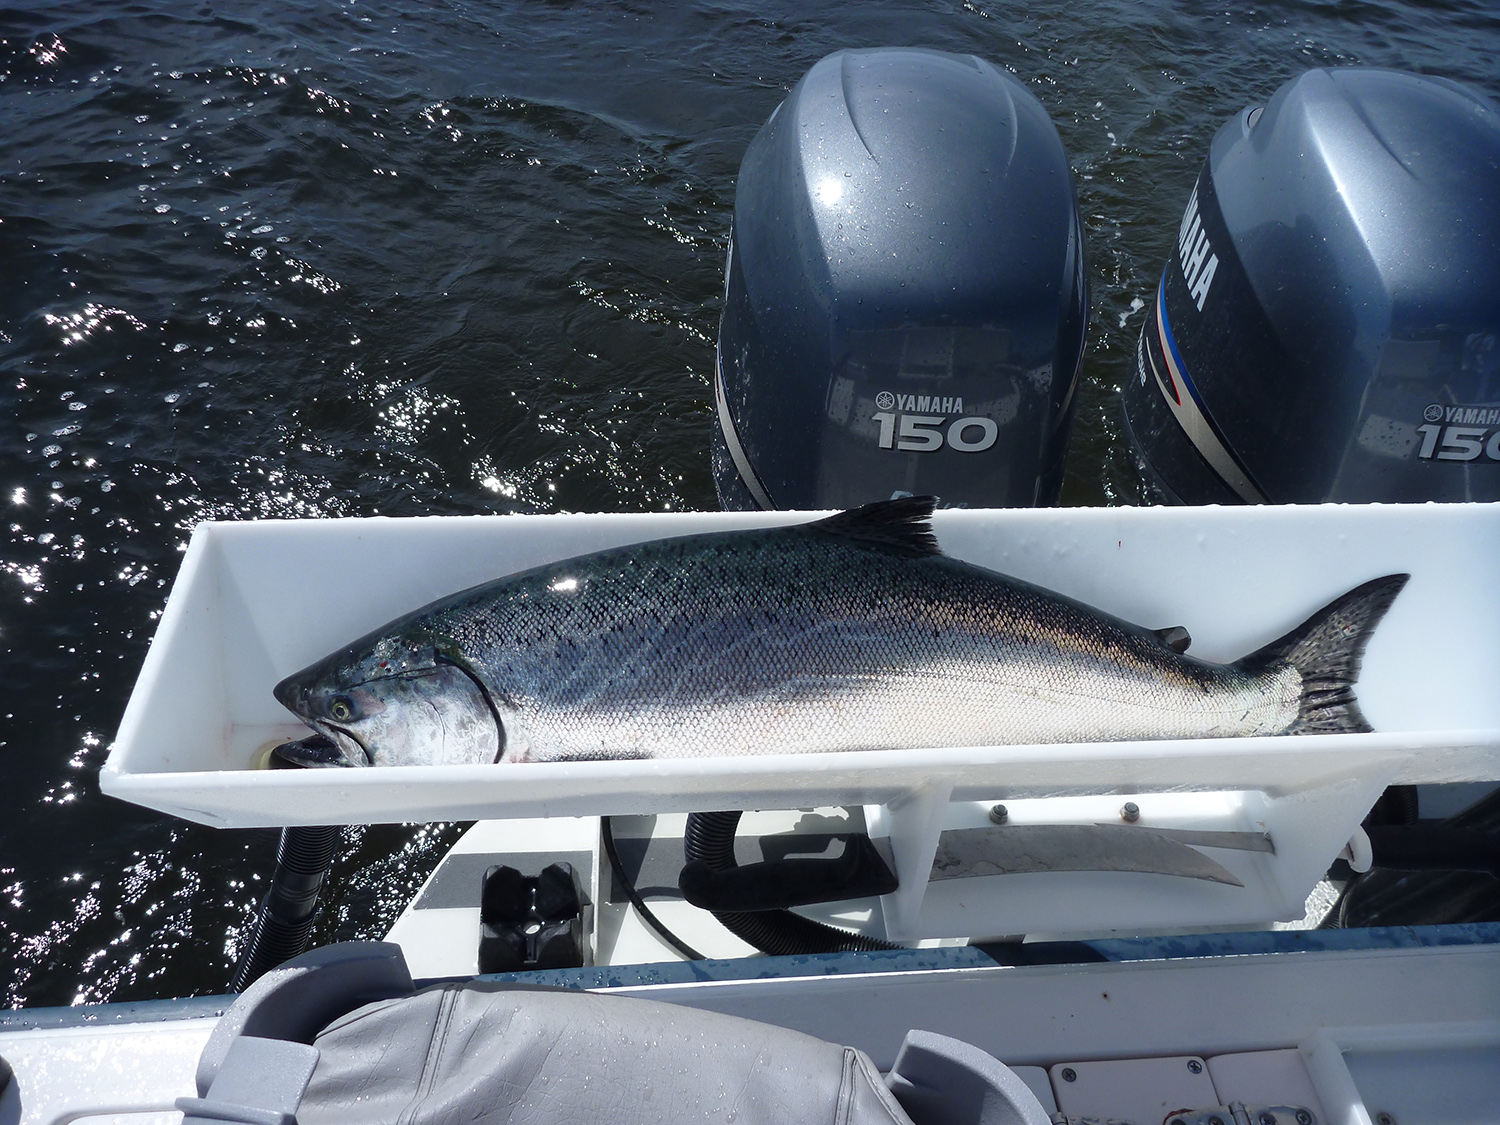 Campbell river gold river guided charter fishing boats for Fish cleaning board